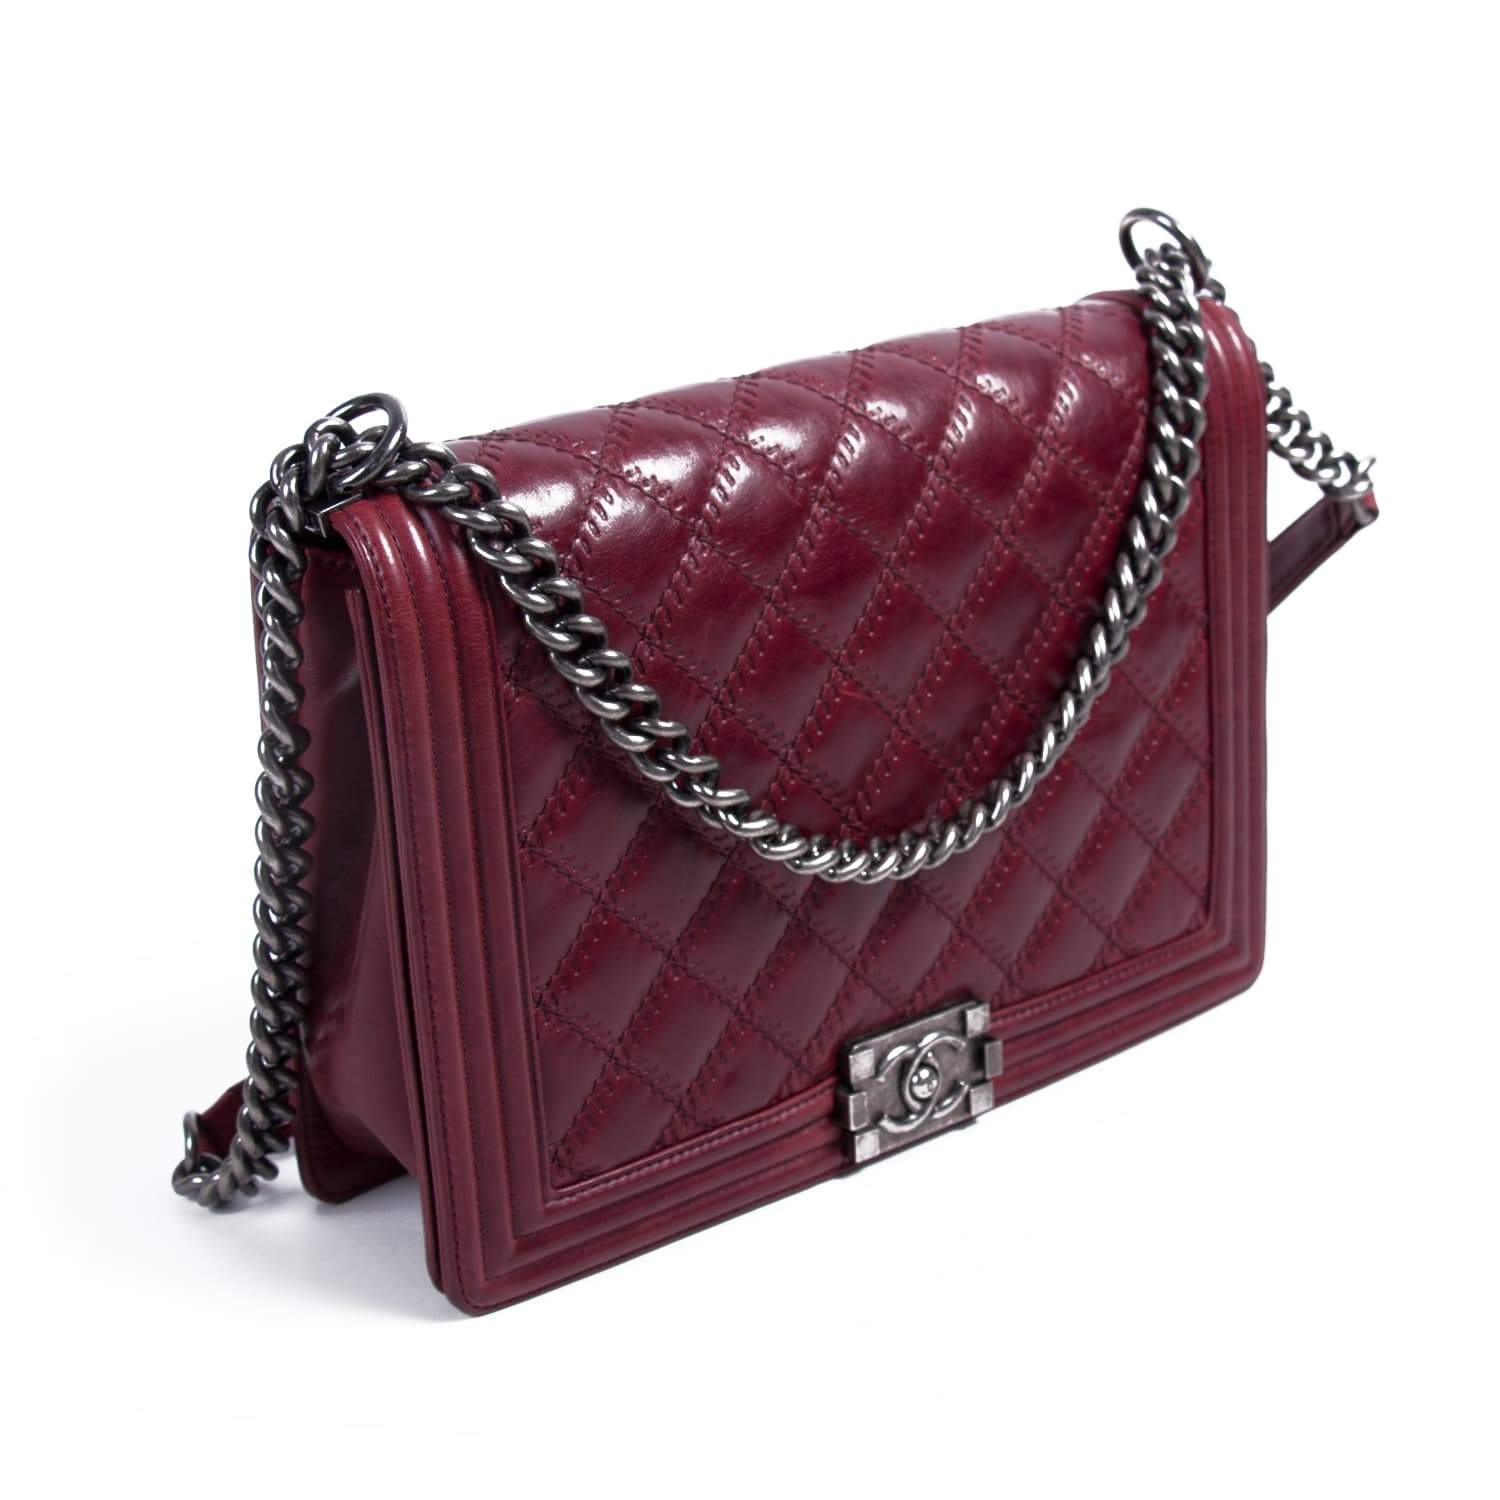 70d34d407147 Chanel Large Burgundy Quilted Leather Large Boy Bag